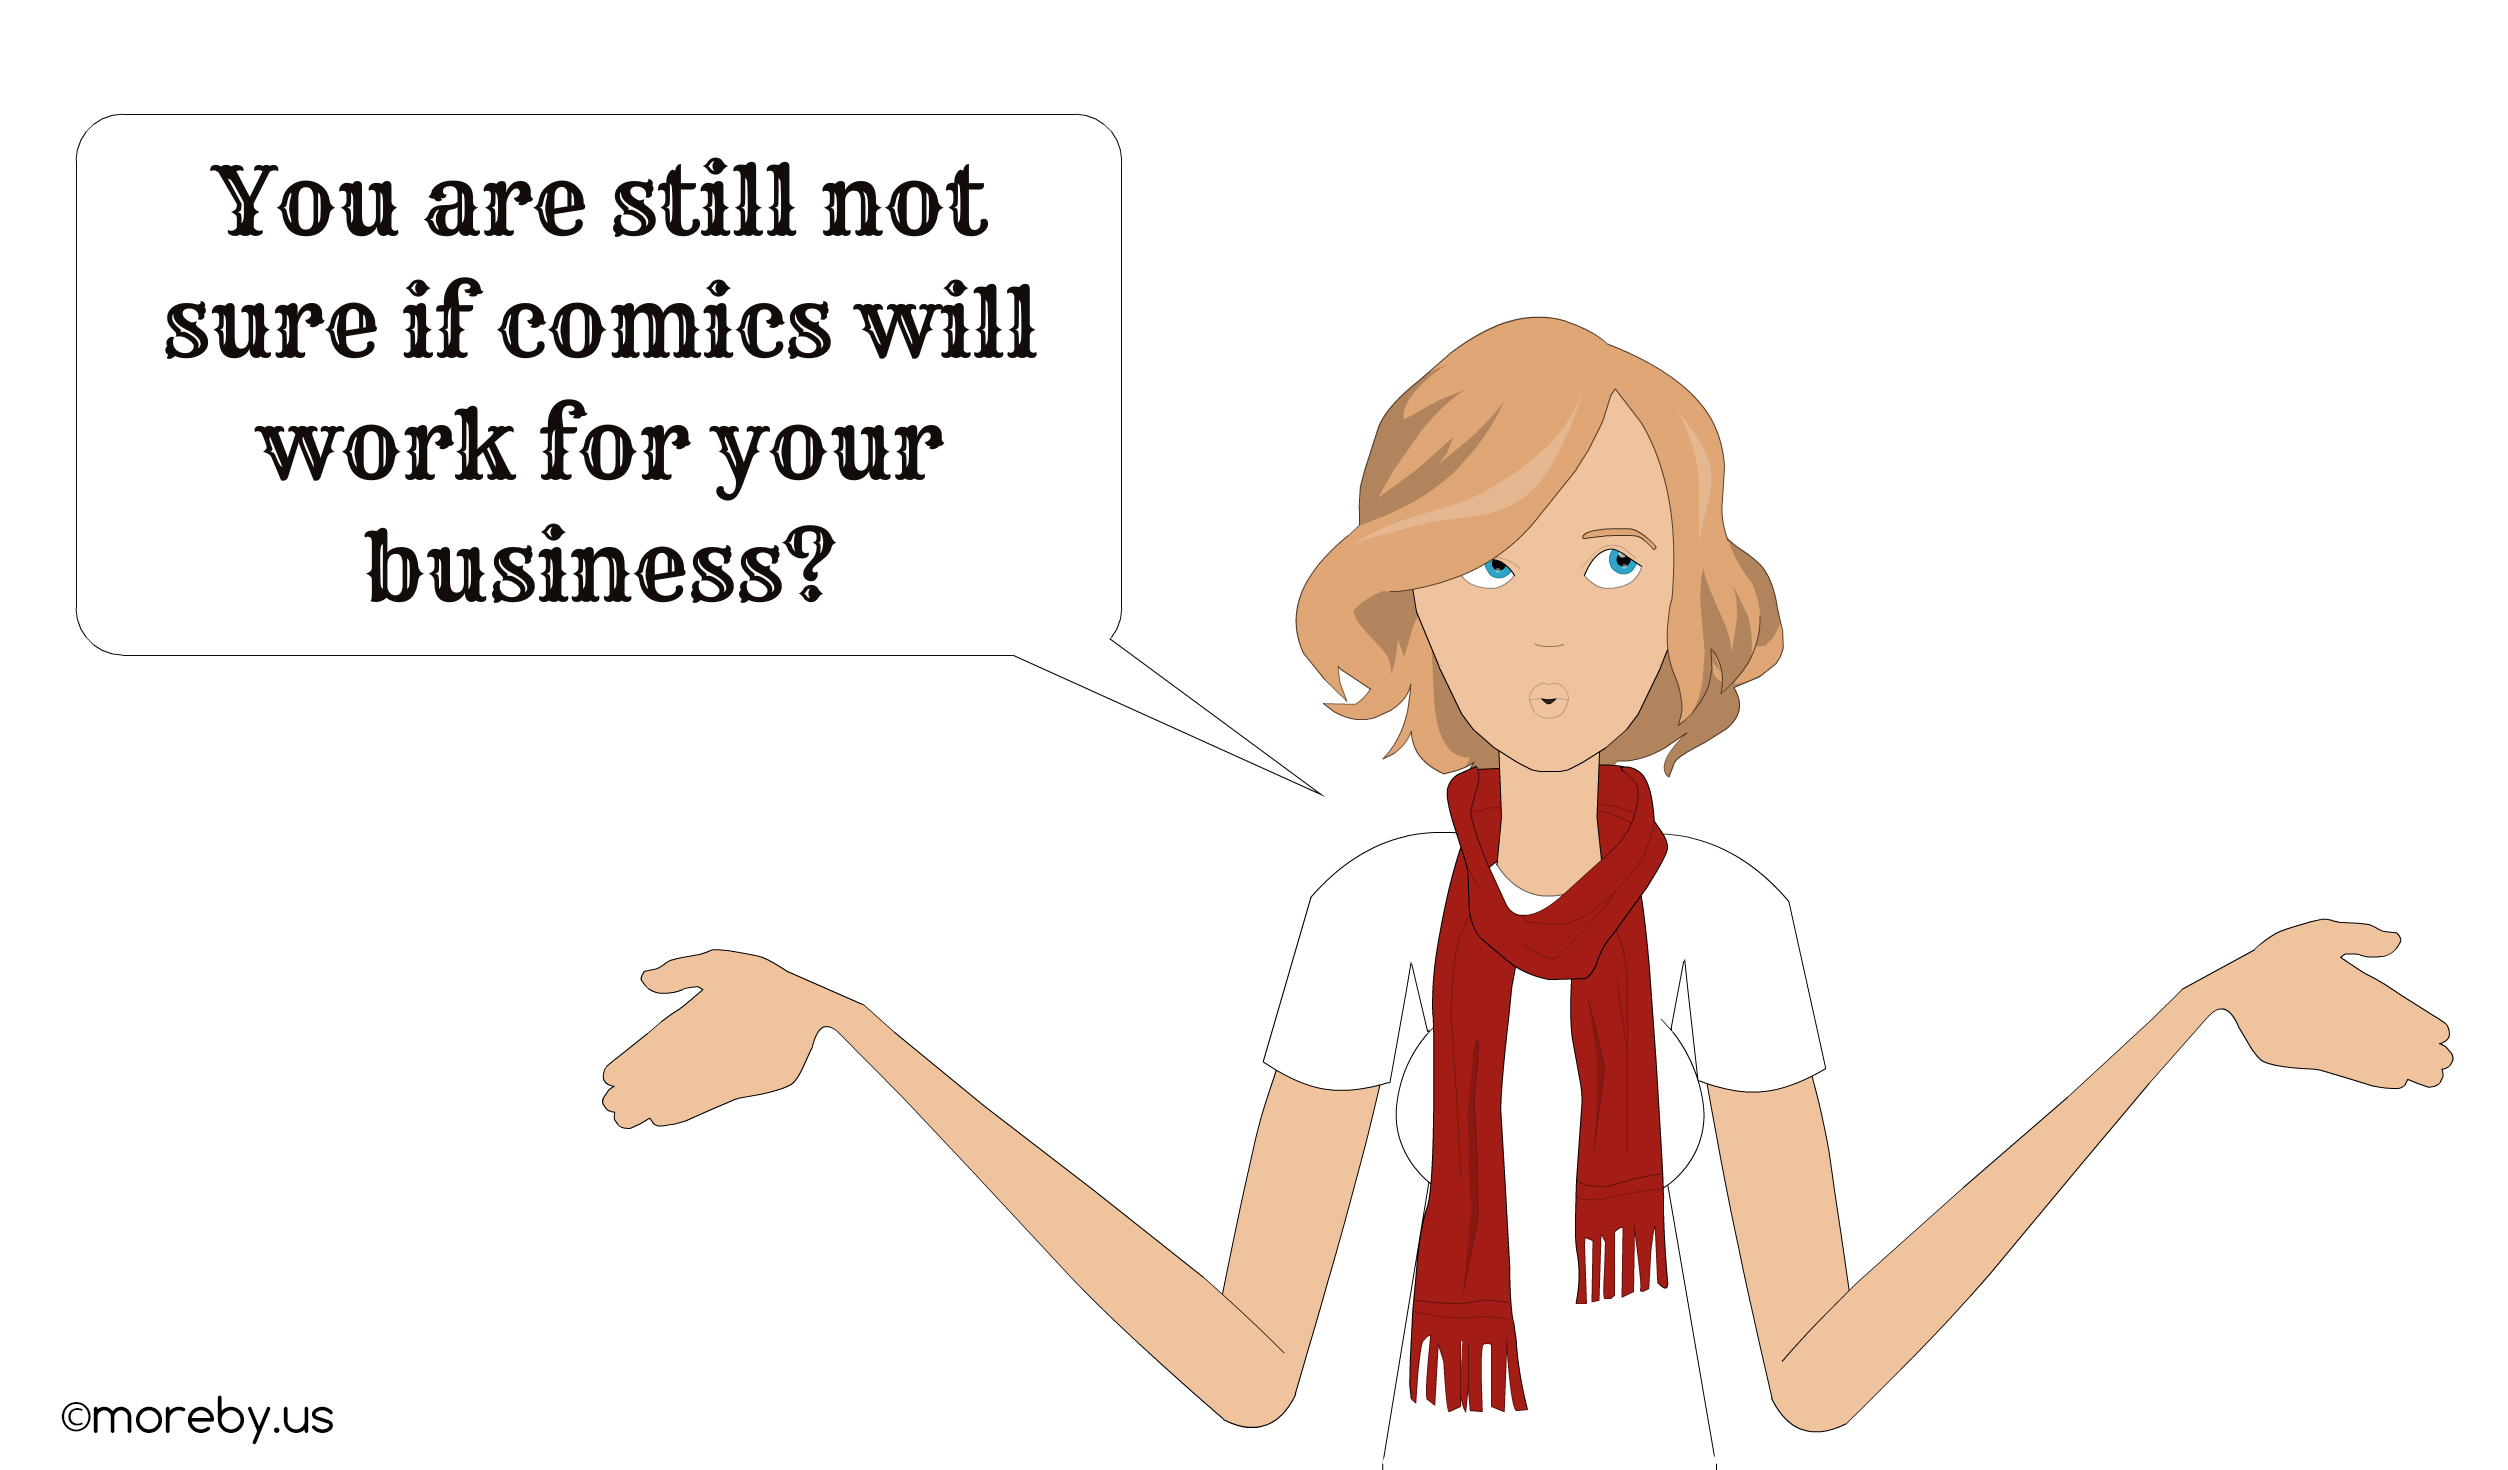 How your marketing strategy can benefit from using comics